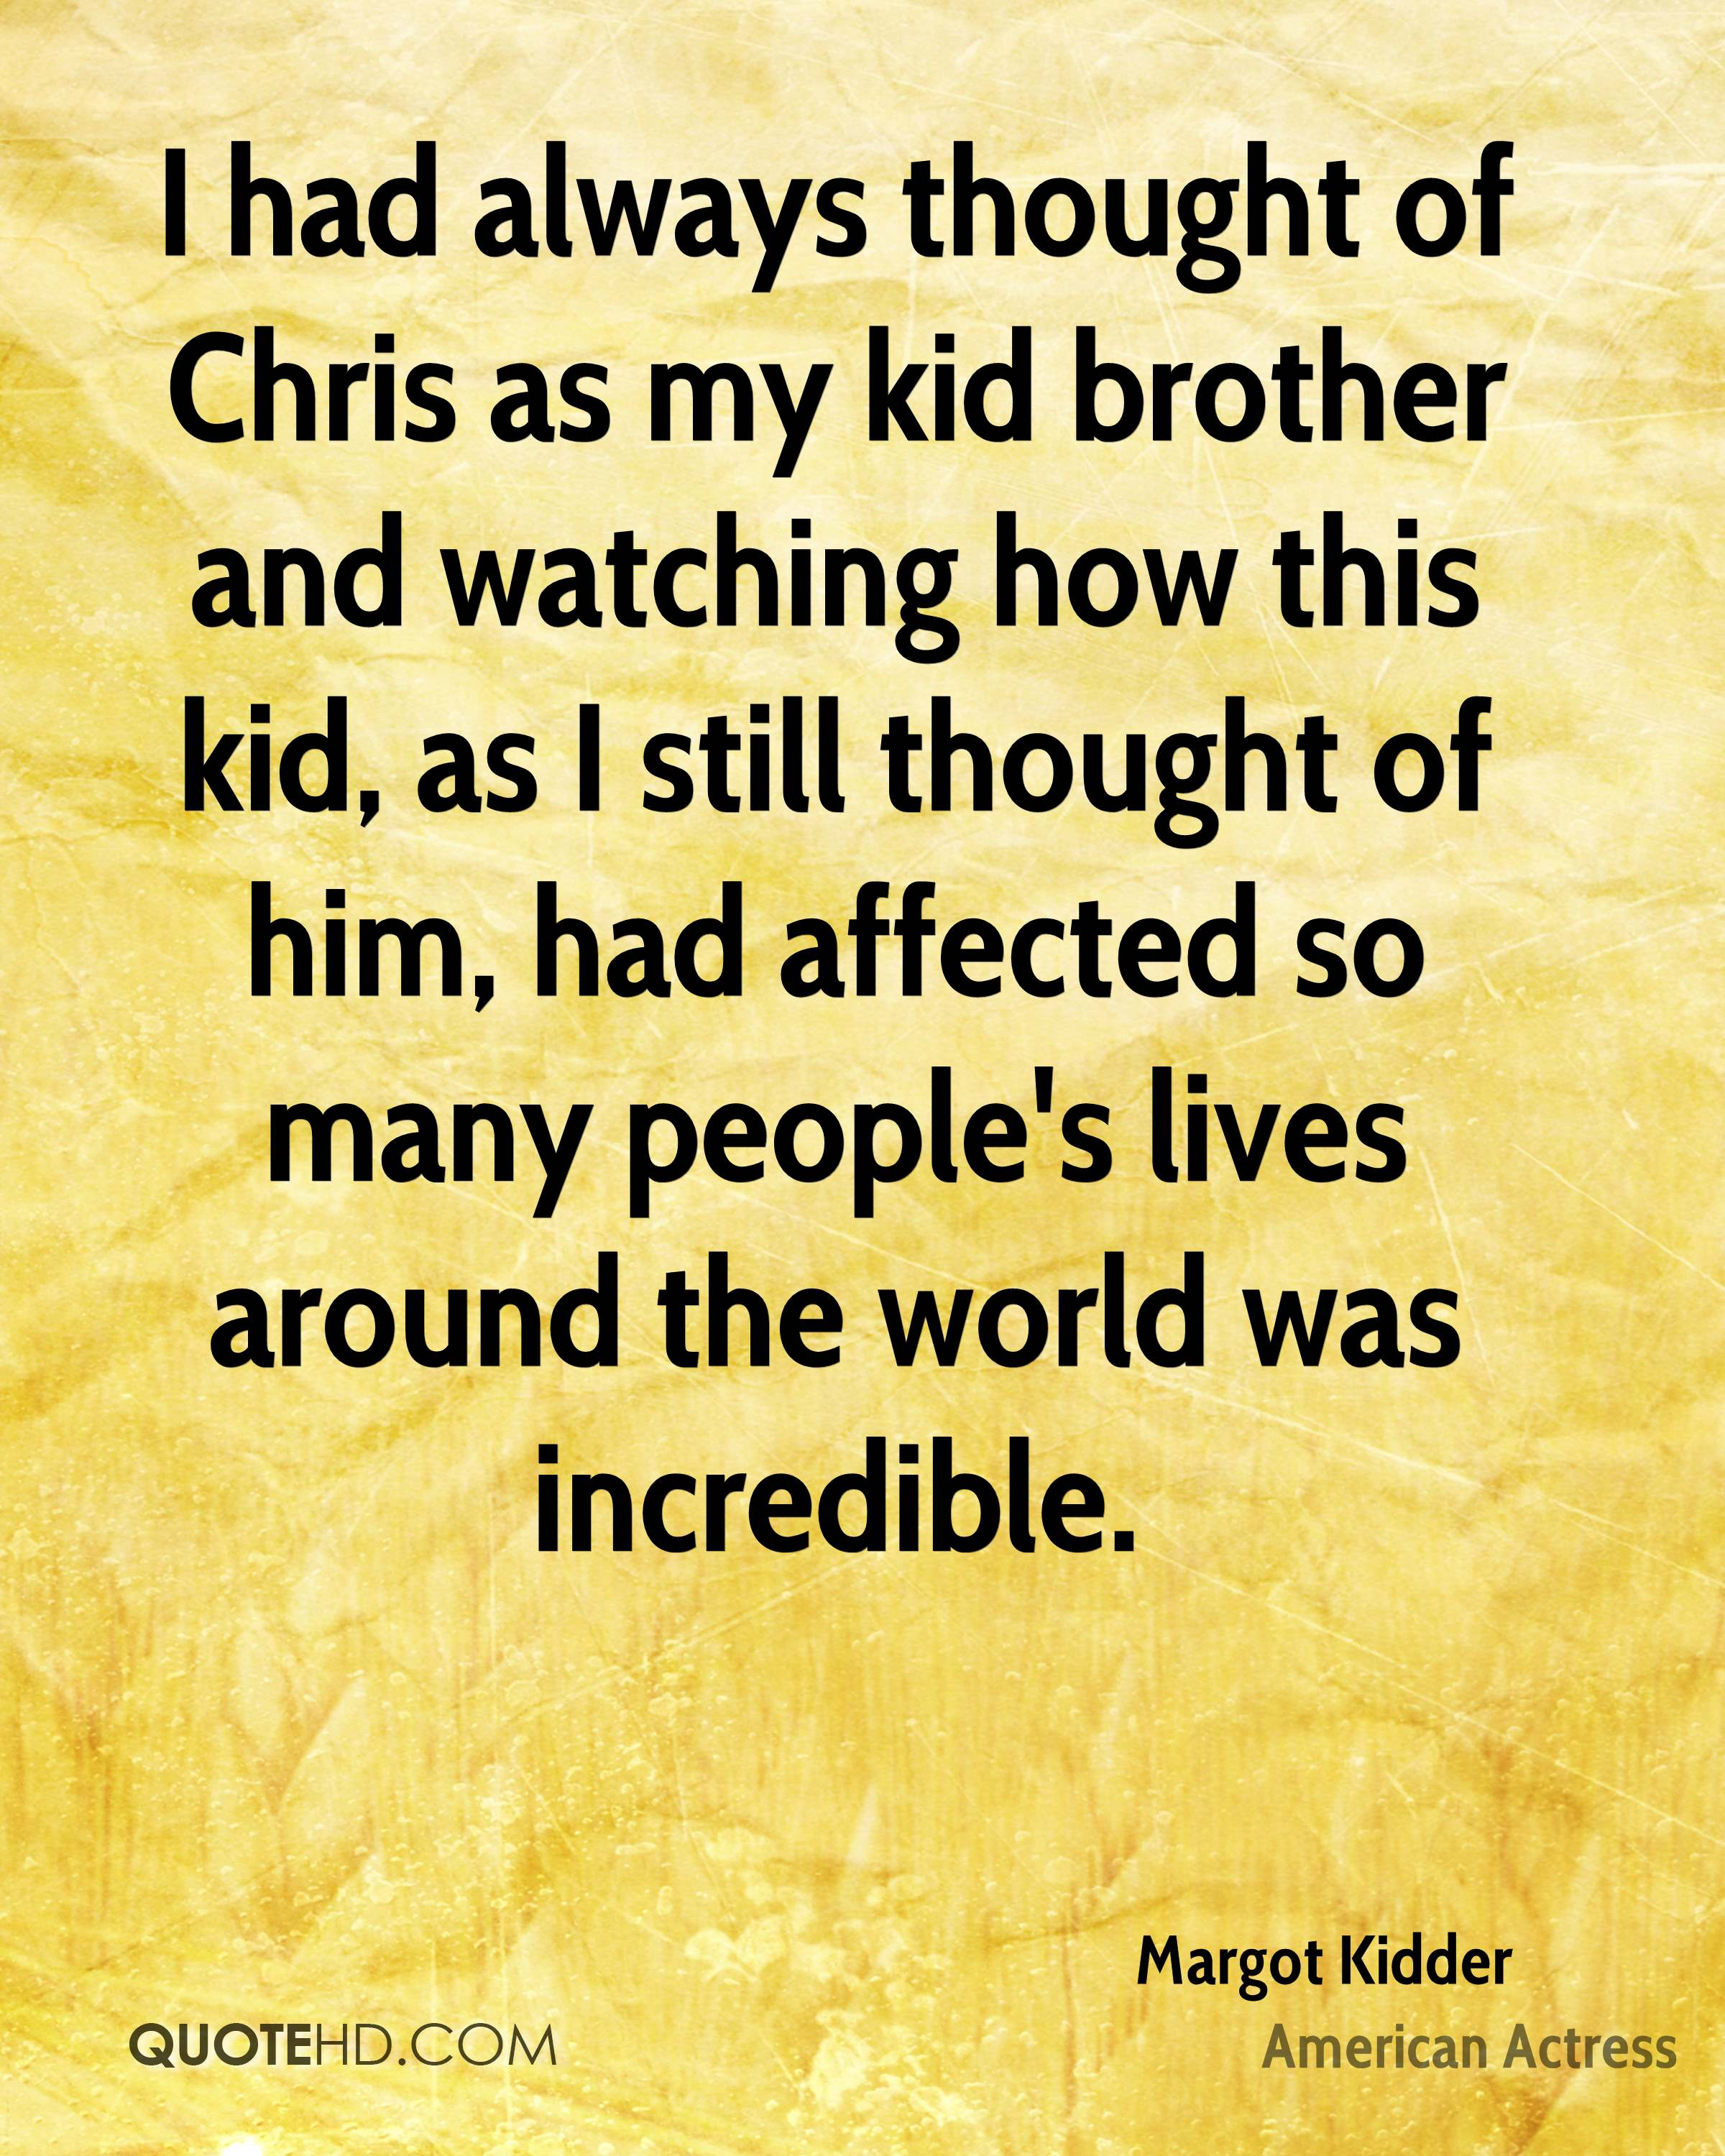 I had always thought of Chris as my kid brother and watching how this kid, as I still thought of him, had affected so many people's lives around the world was incredible.